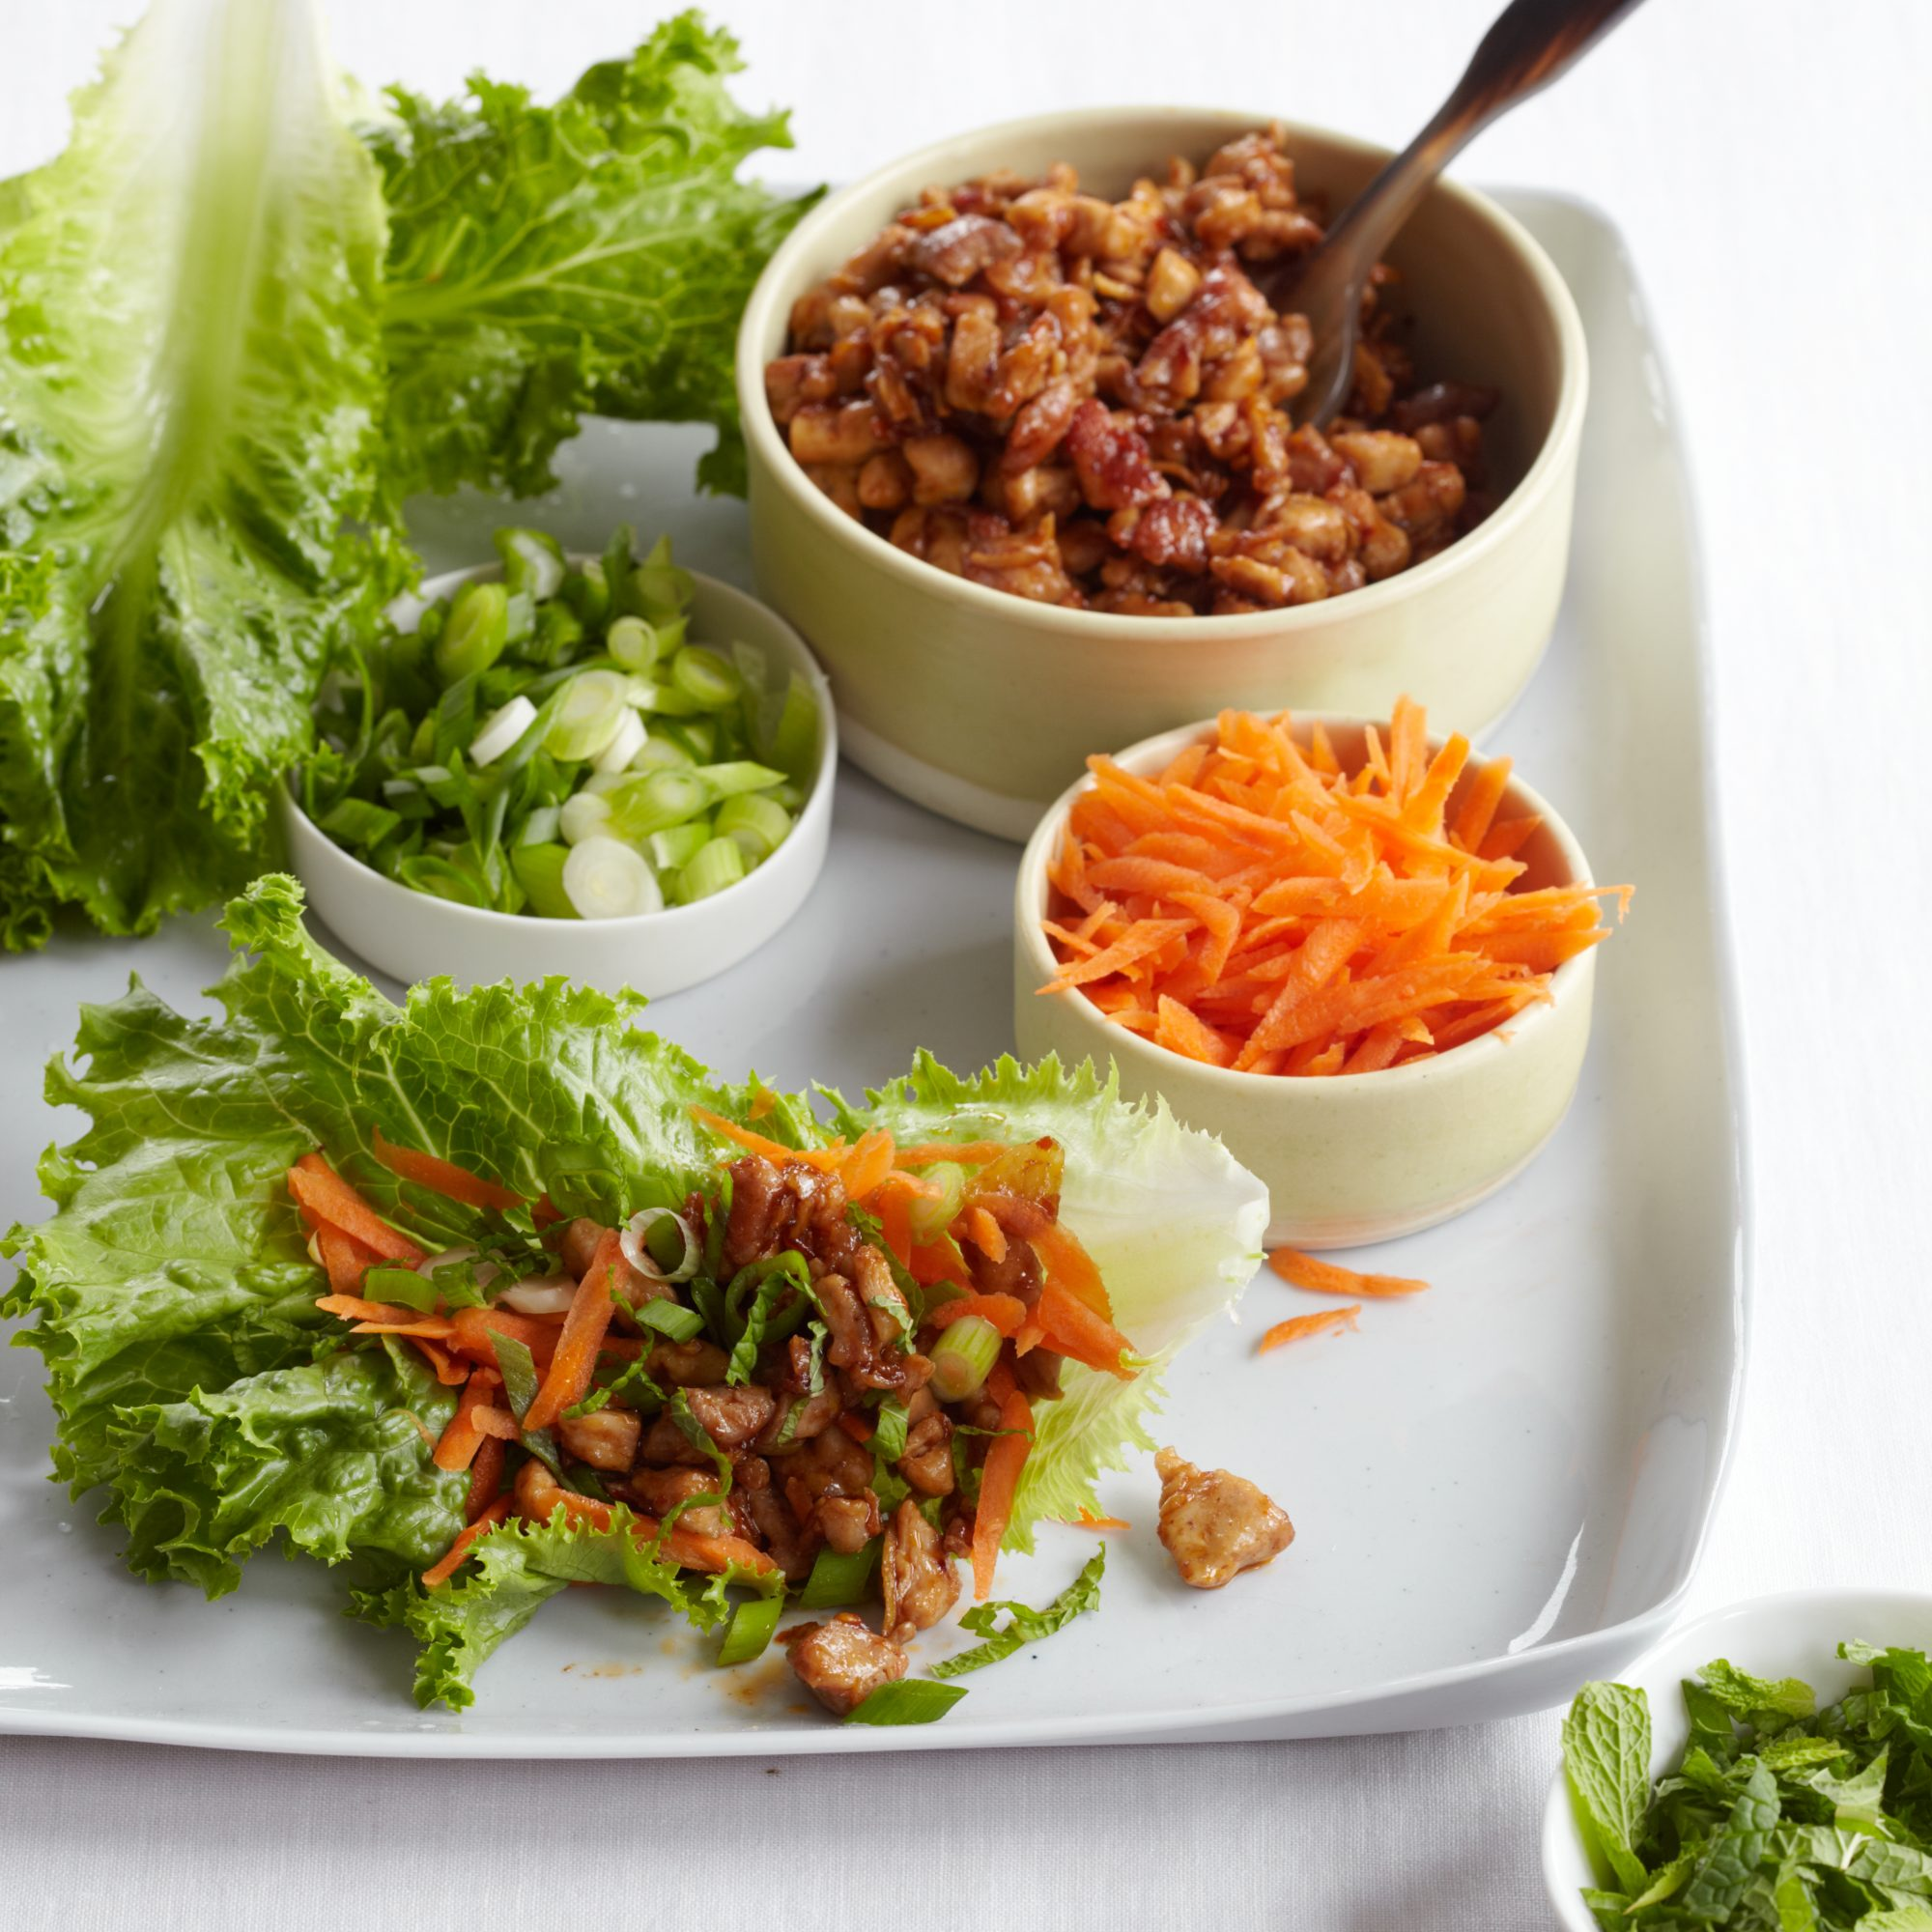 201009-r-chicken-lettuce-leaves.jpg